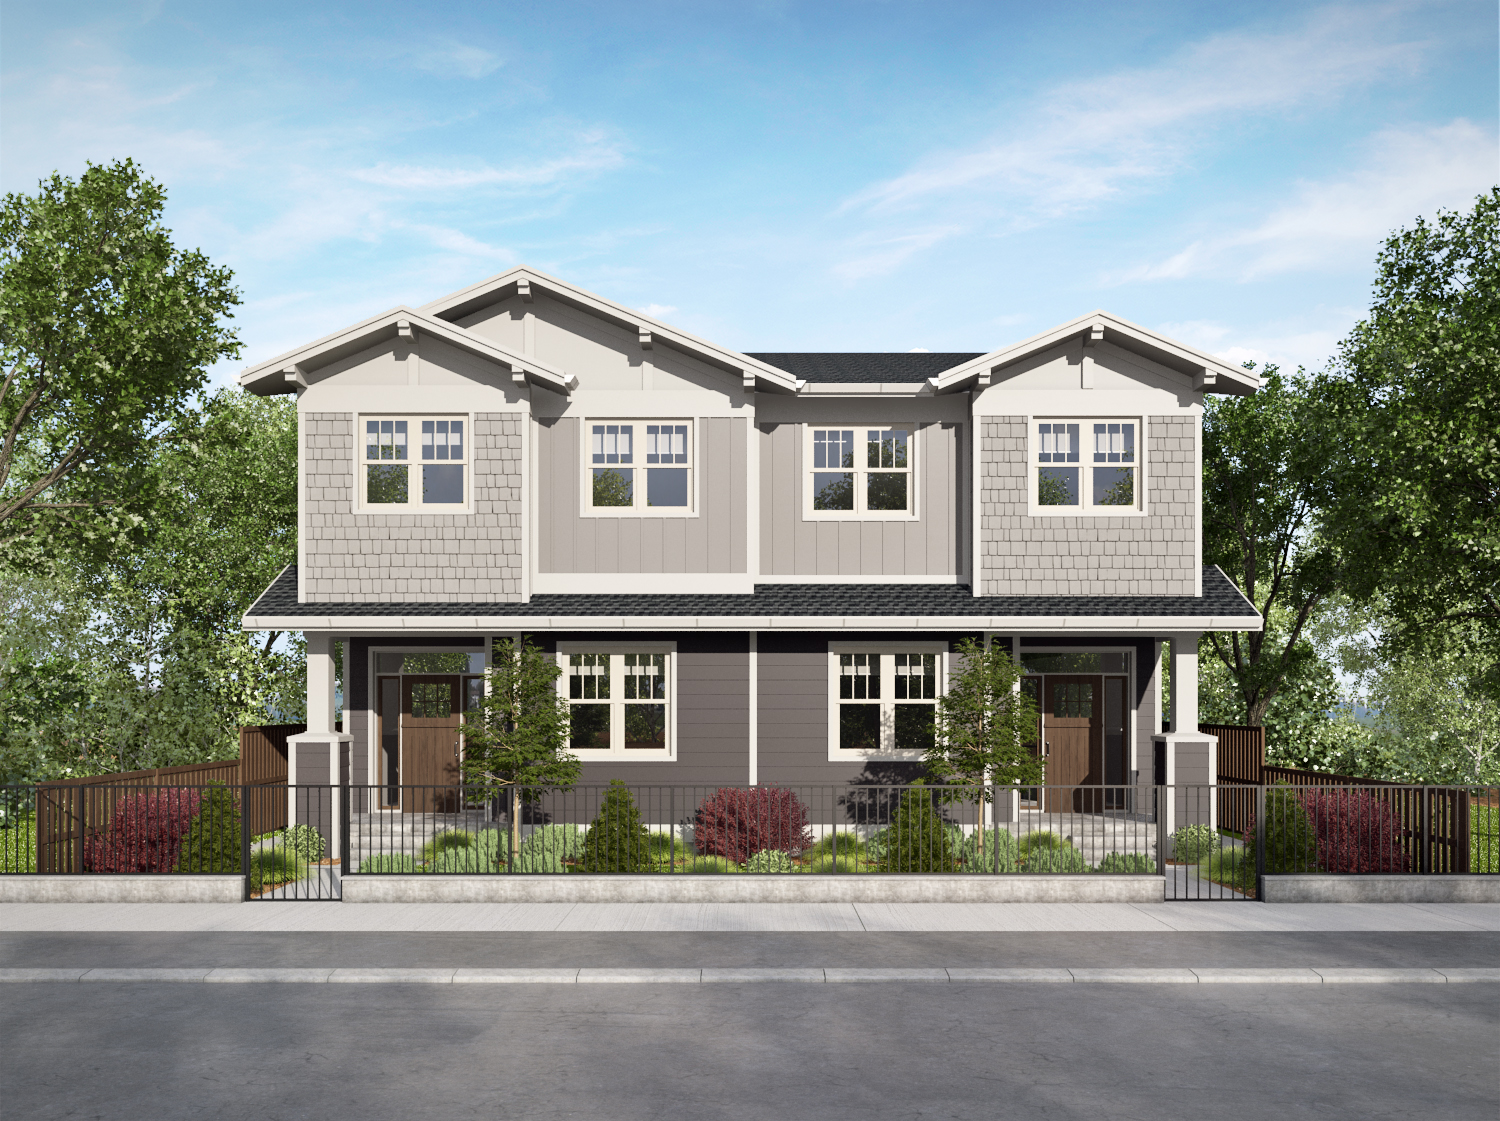 SIZE: 1,596 SF LOCATION: Penticton, BC COMPLETED: 2019 SECTOR: Townhome Residential